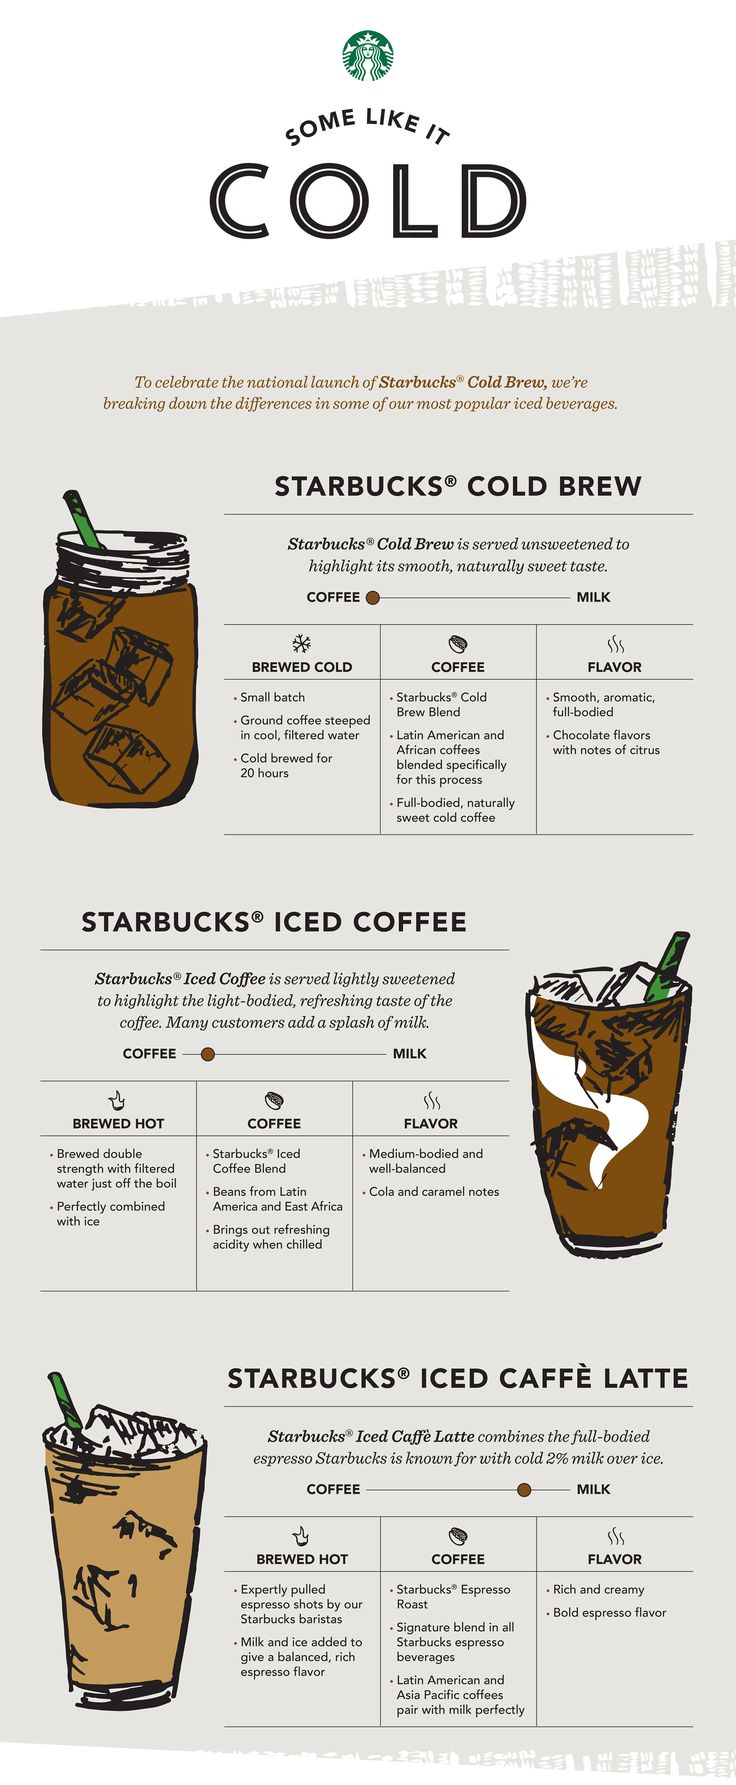 Starbucks Small-Batch Cold Brew Coffee Expands Across the U.S. and Canada | Starbucks Newsroom